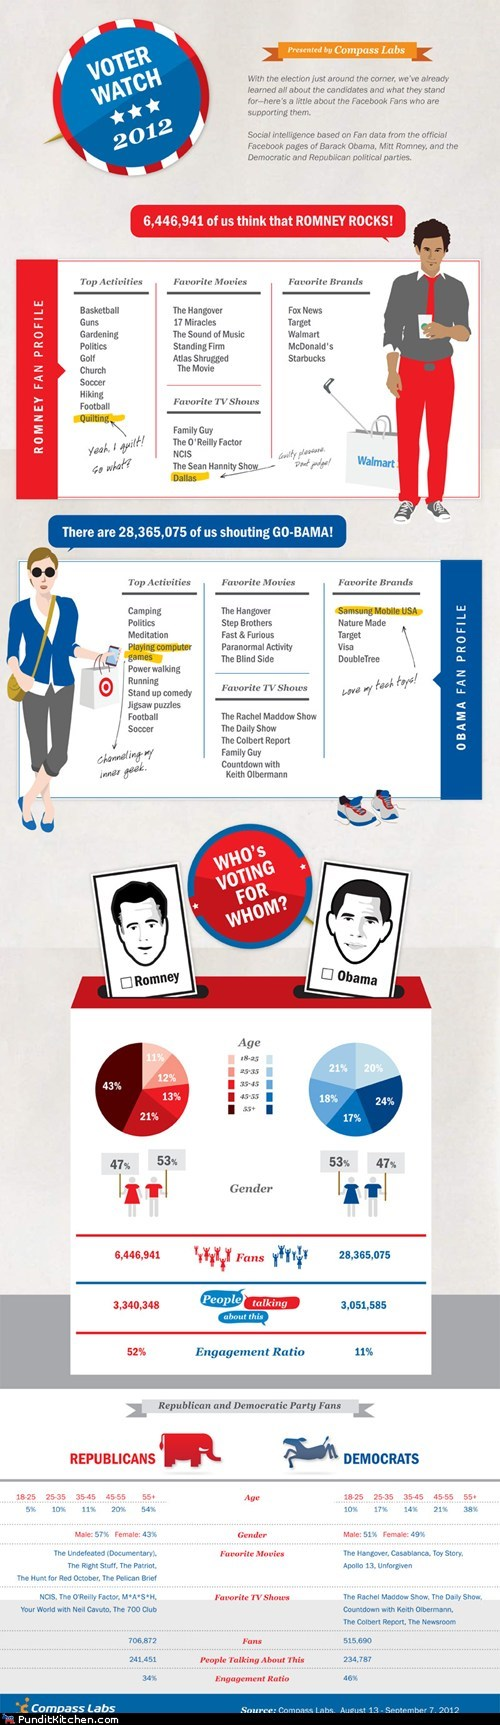 barack obama facebook fan pages infographic interests likes Mitt Romney - 6576792832